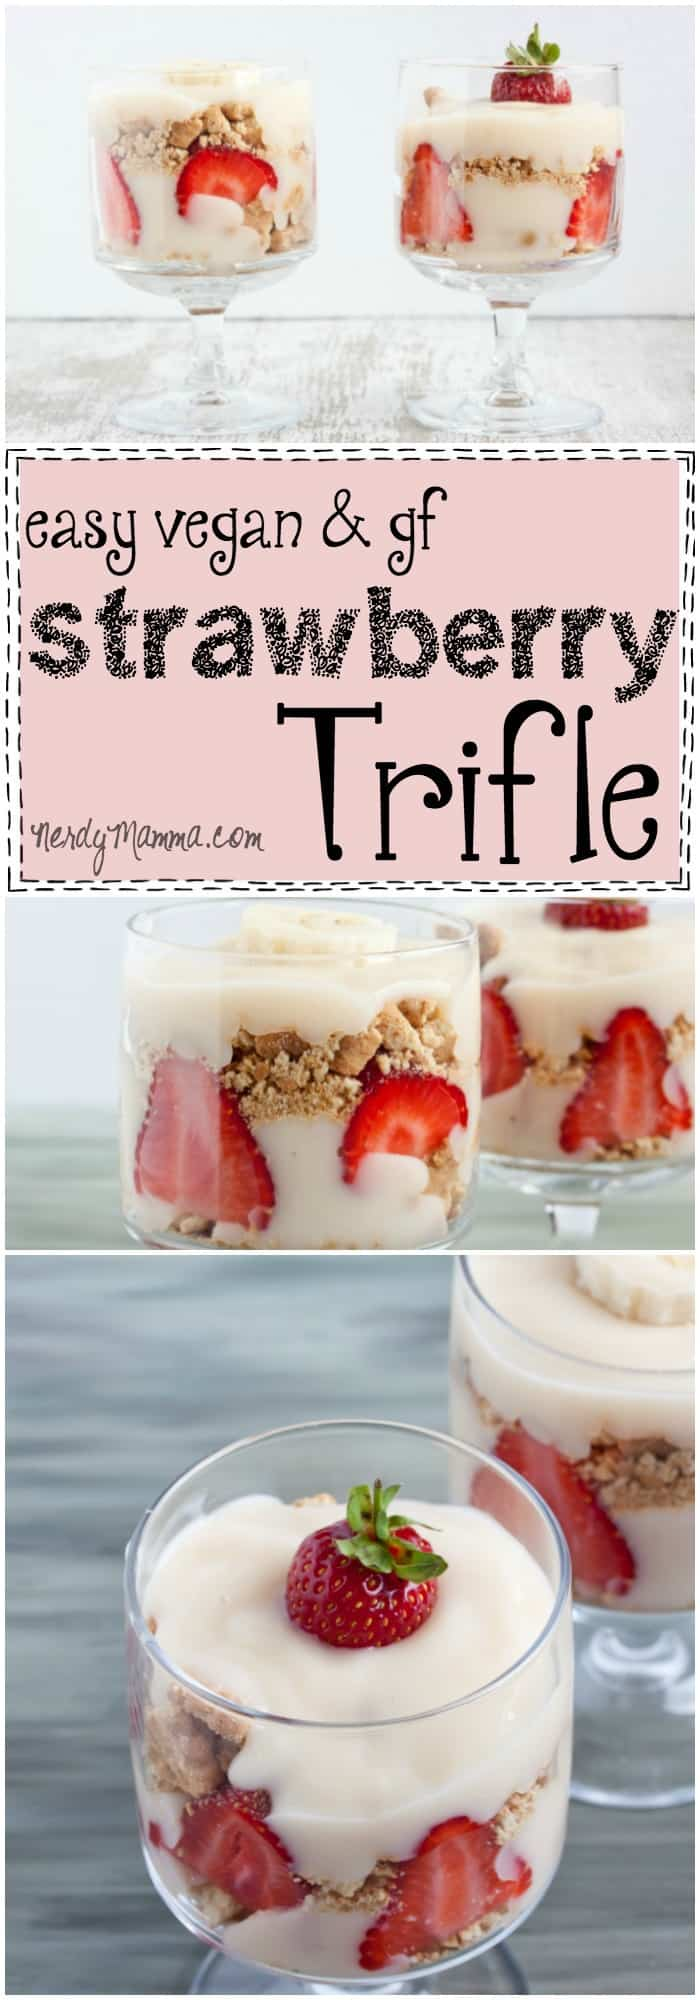 I cannot wait to make this easy gluten-free and vegan strawberry trifle. I mean YUM!